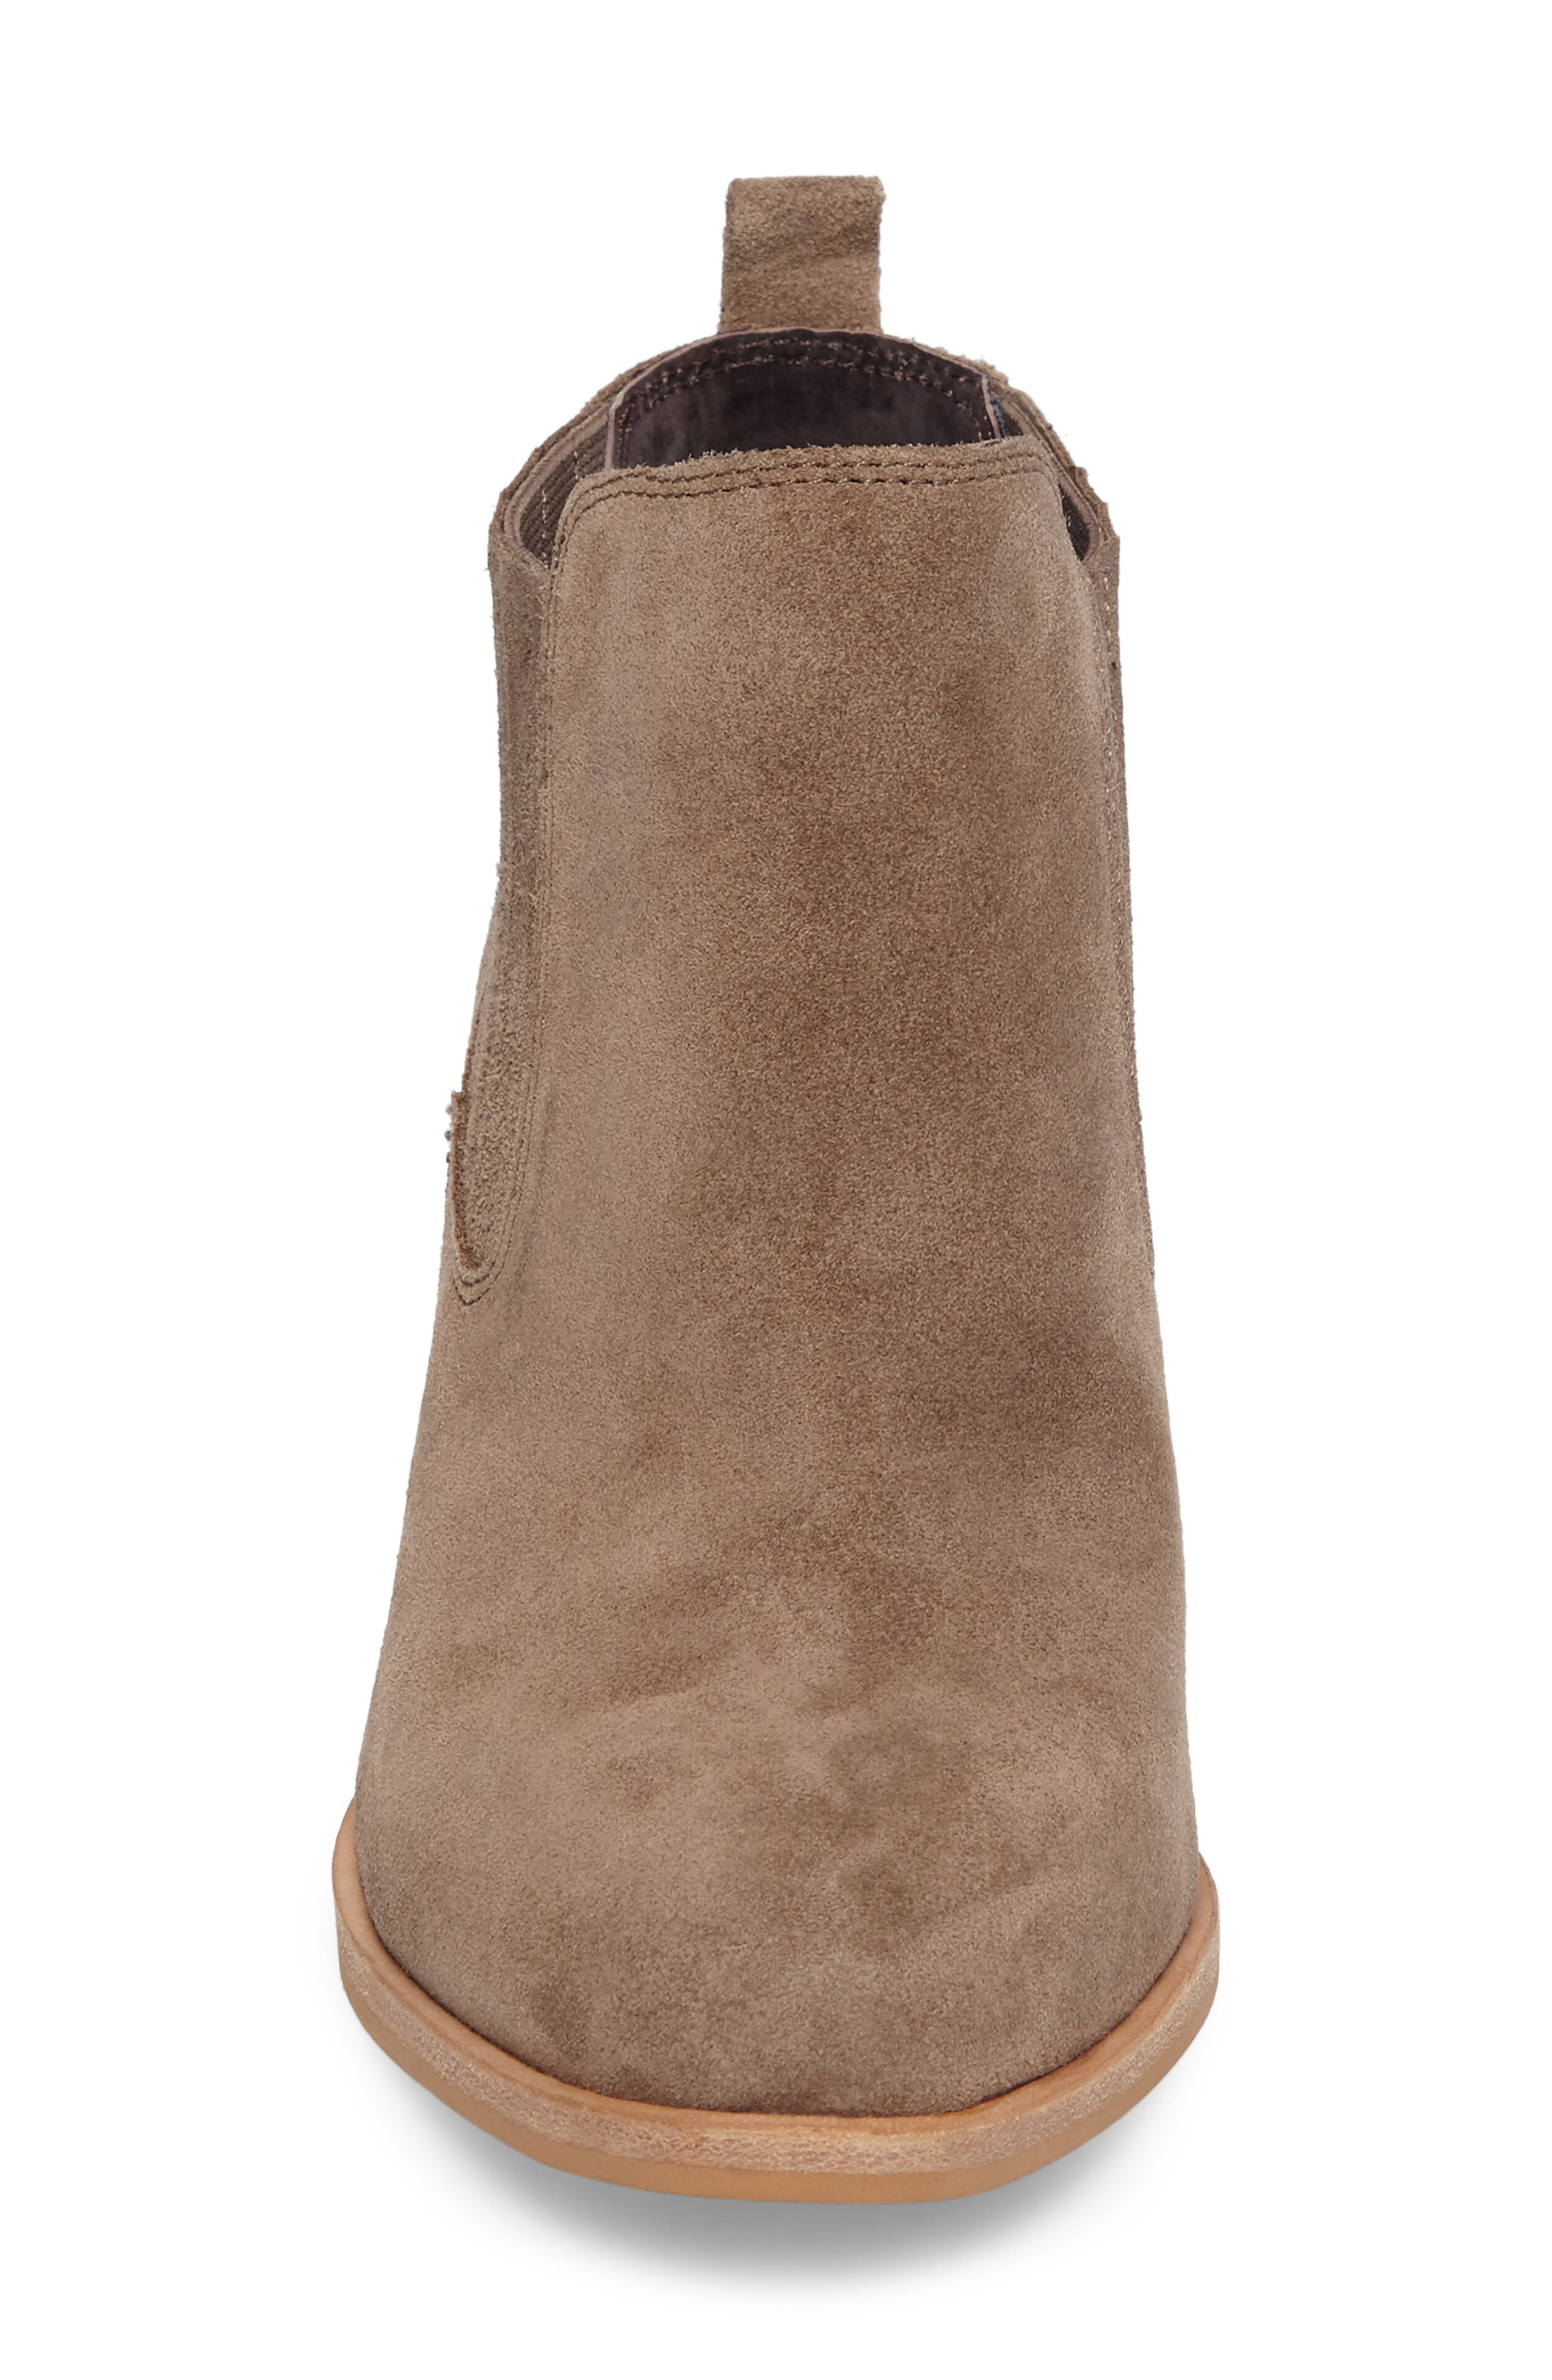 ISOLÁ, Olicia Gored Bootie, Alternate thumbnail 4, color, MARMOTTA LIGHT GREY SUEDE